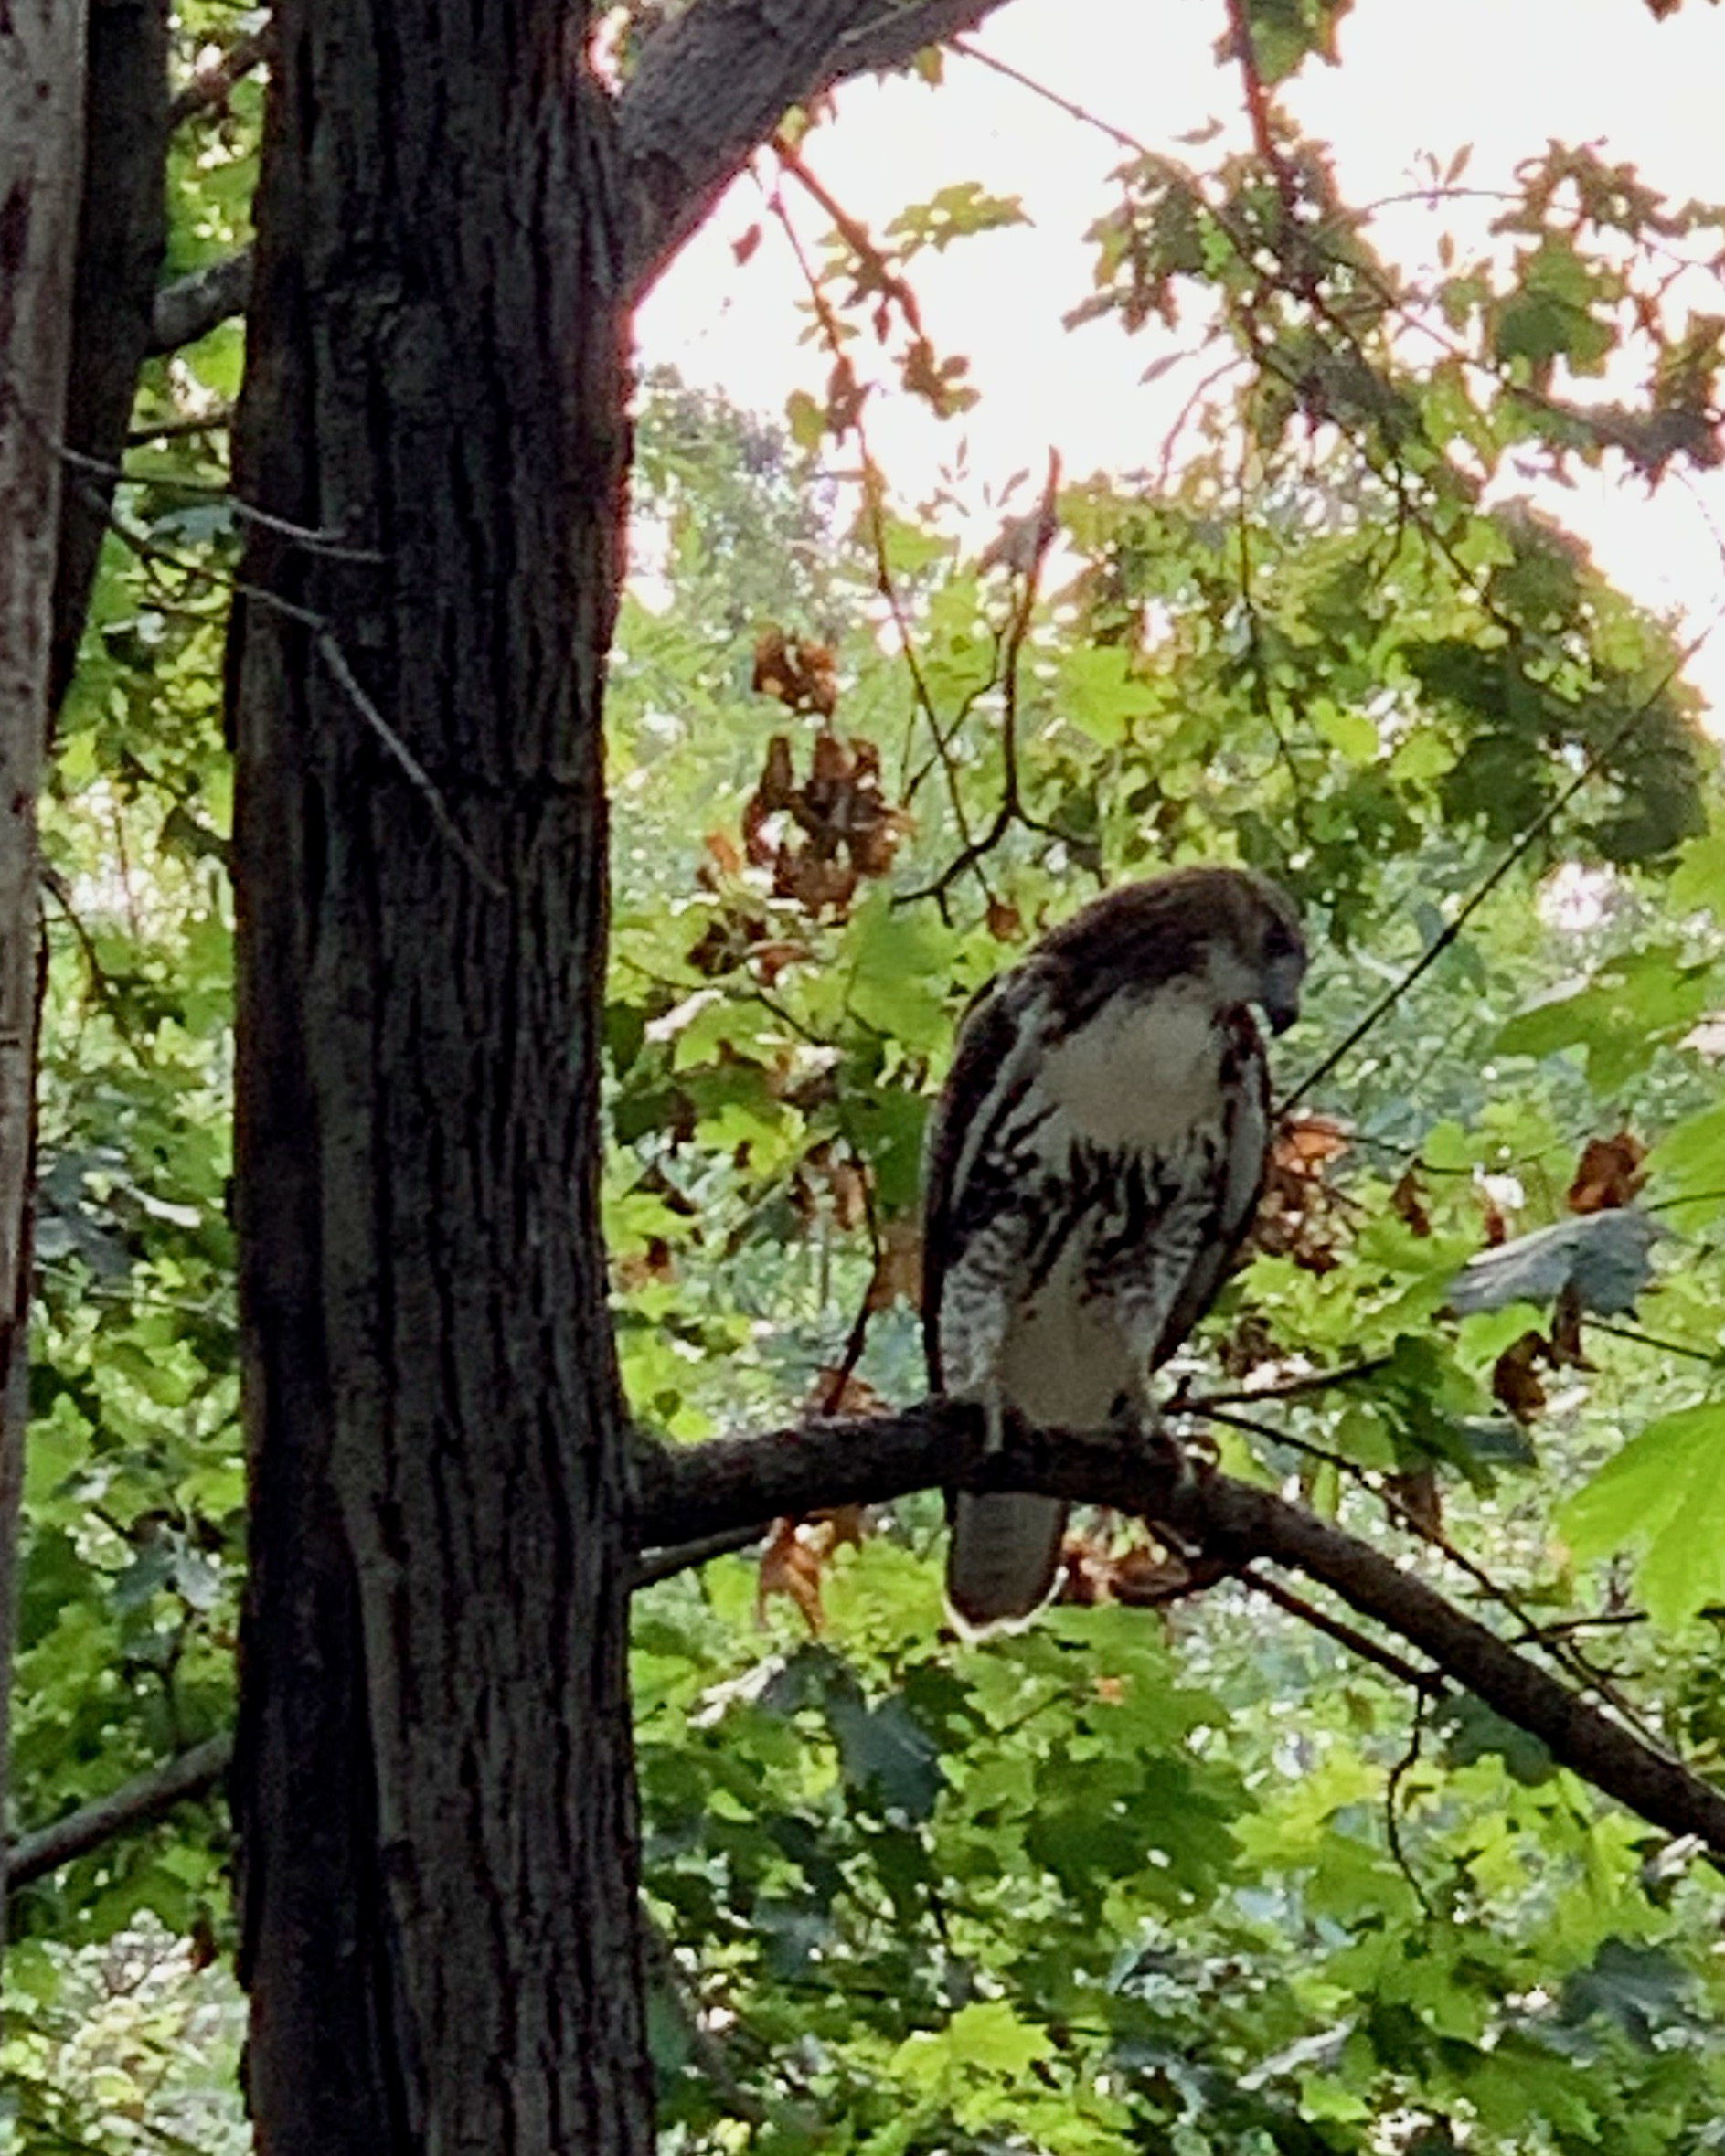 A red-tailed hawk sitting on a branch in New York City